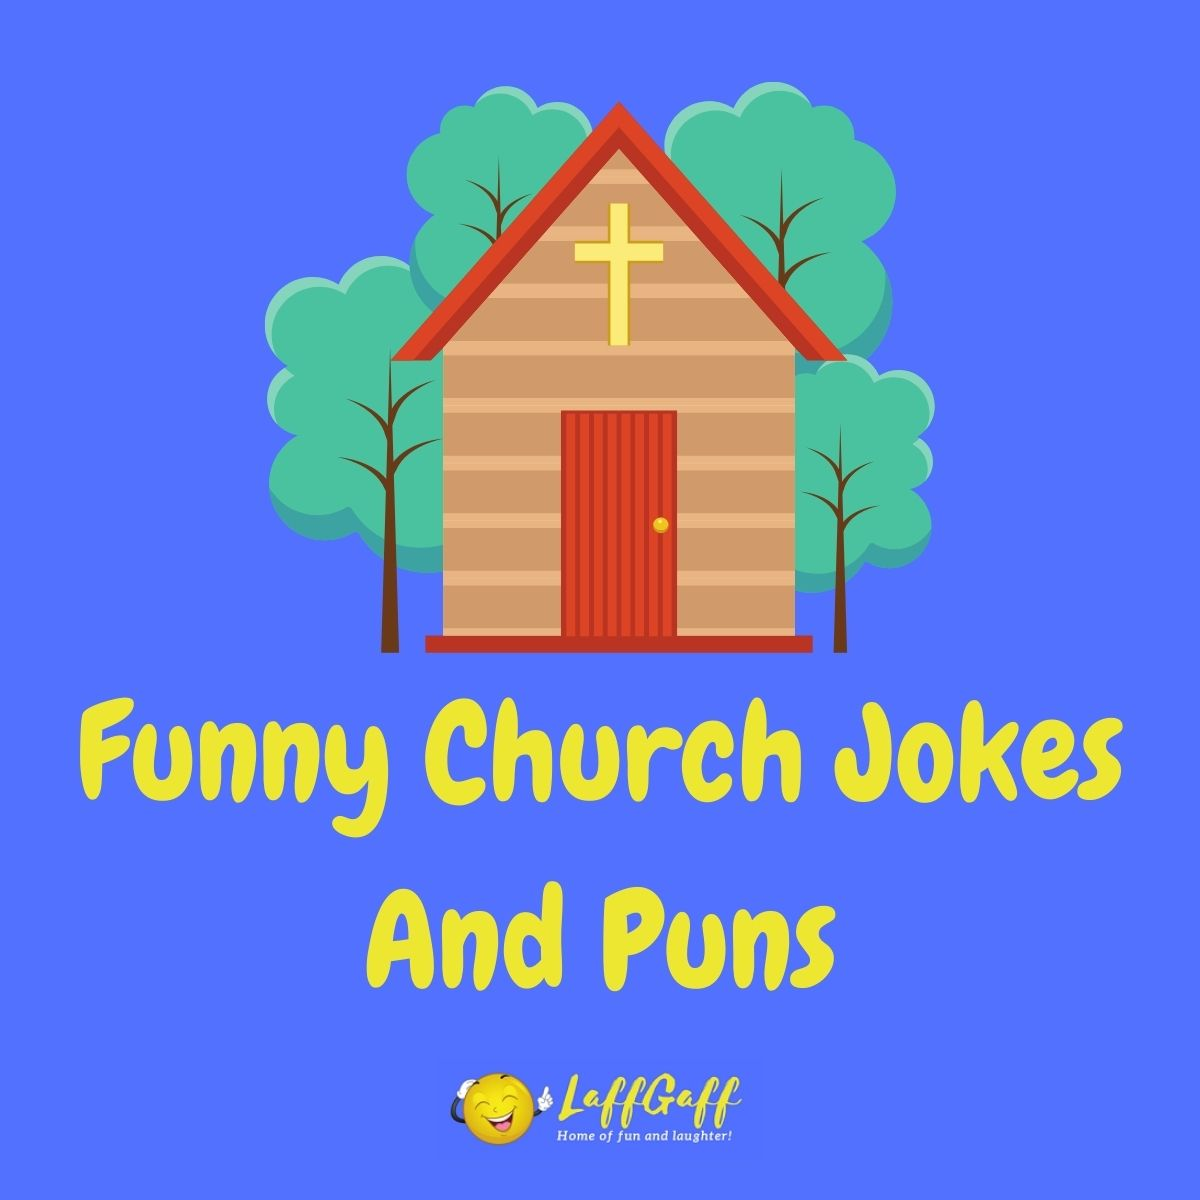 Featured image for a page of funny church jokes and puns.